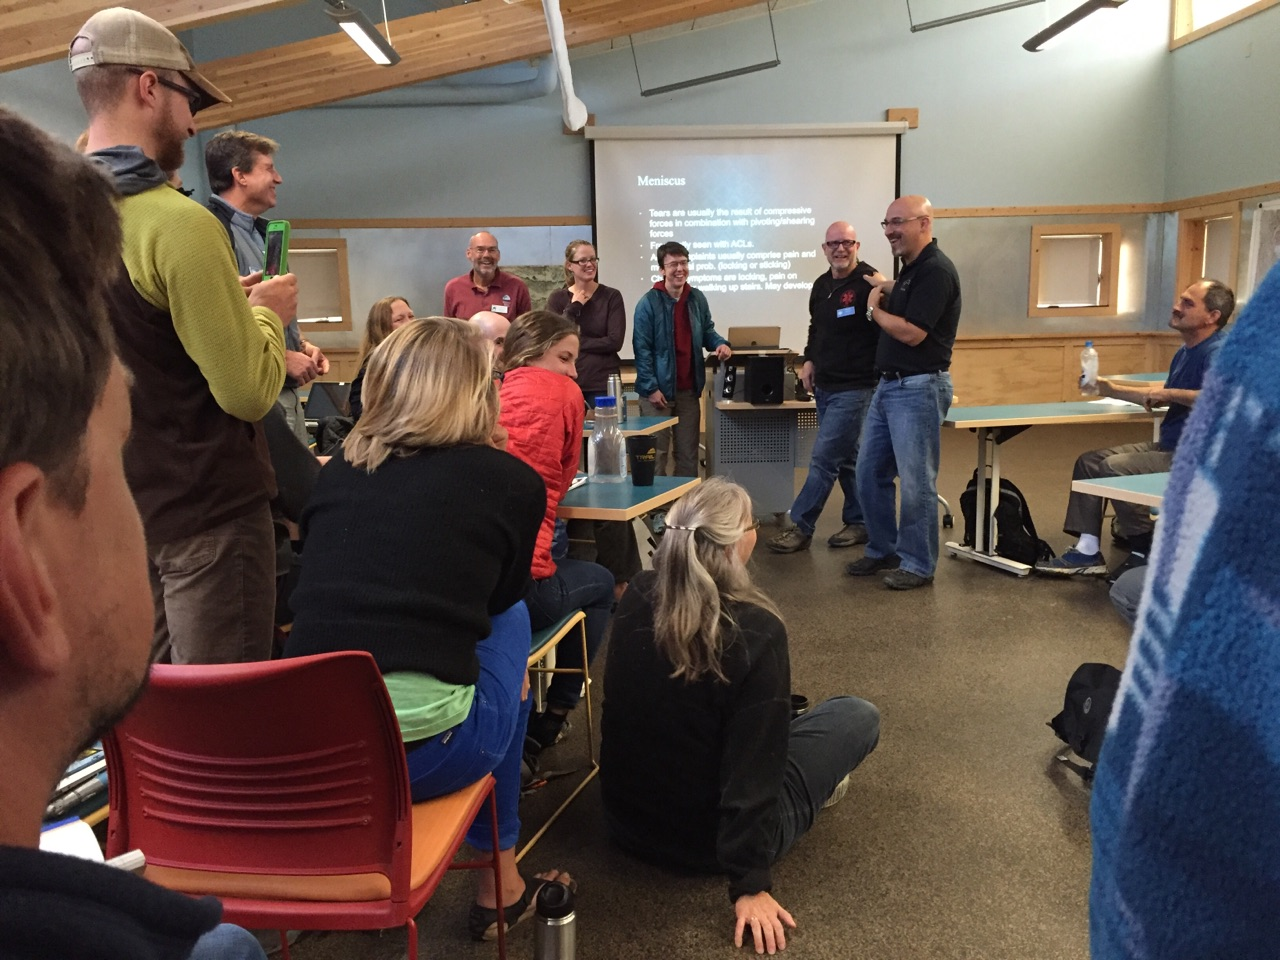 class-wilderness-medicine-nols-staff-meeting